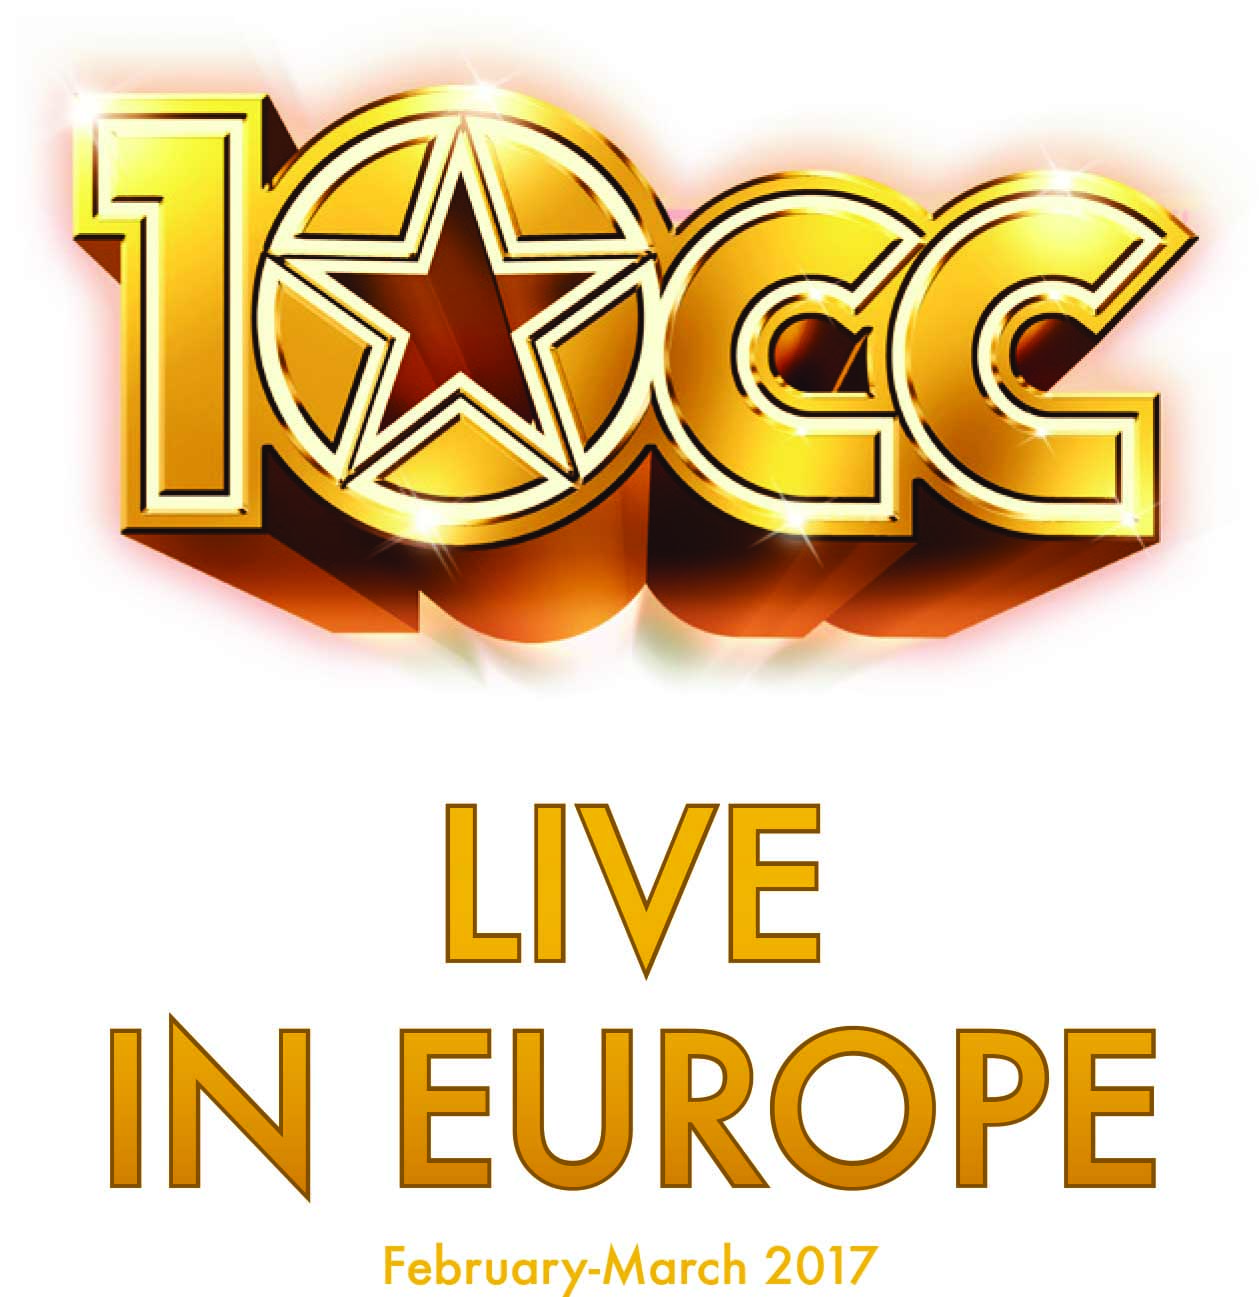 NEW 10CC on tour in Europe CD - 10CC